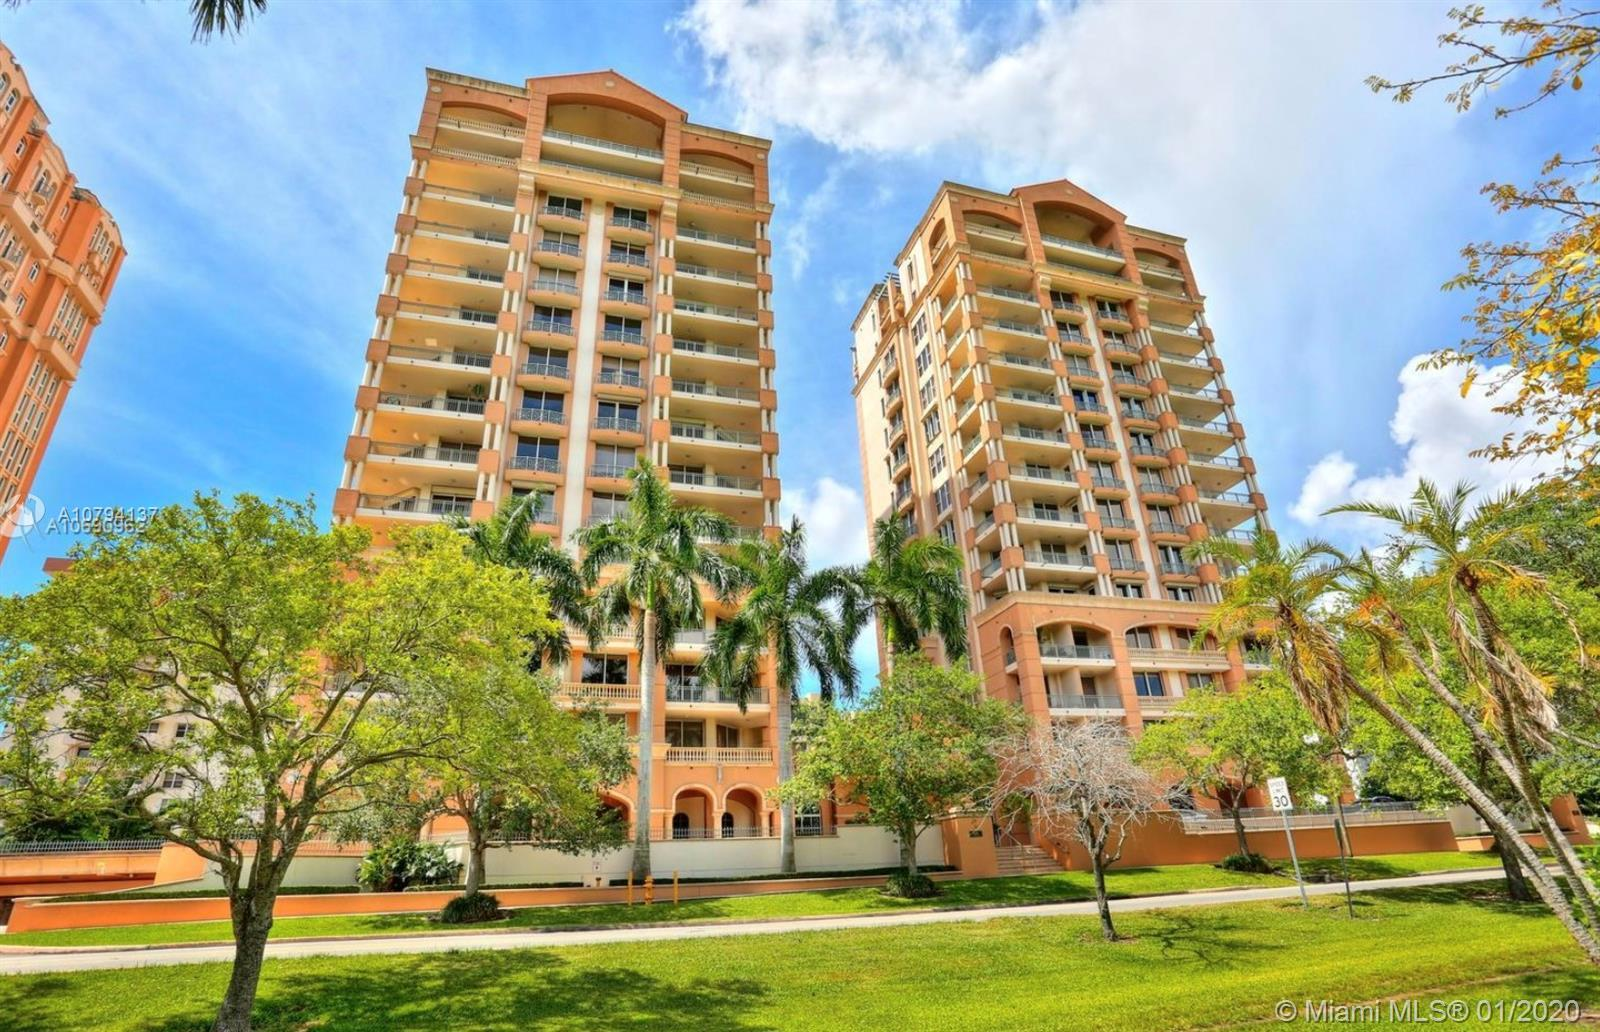 Best line, corner unit in the exclusive Gables on the Green Condominium with only 2 units per floor